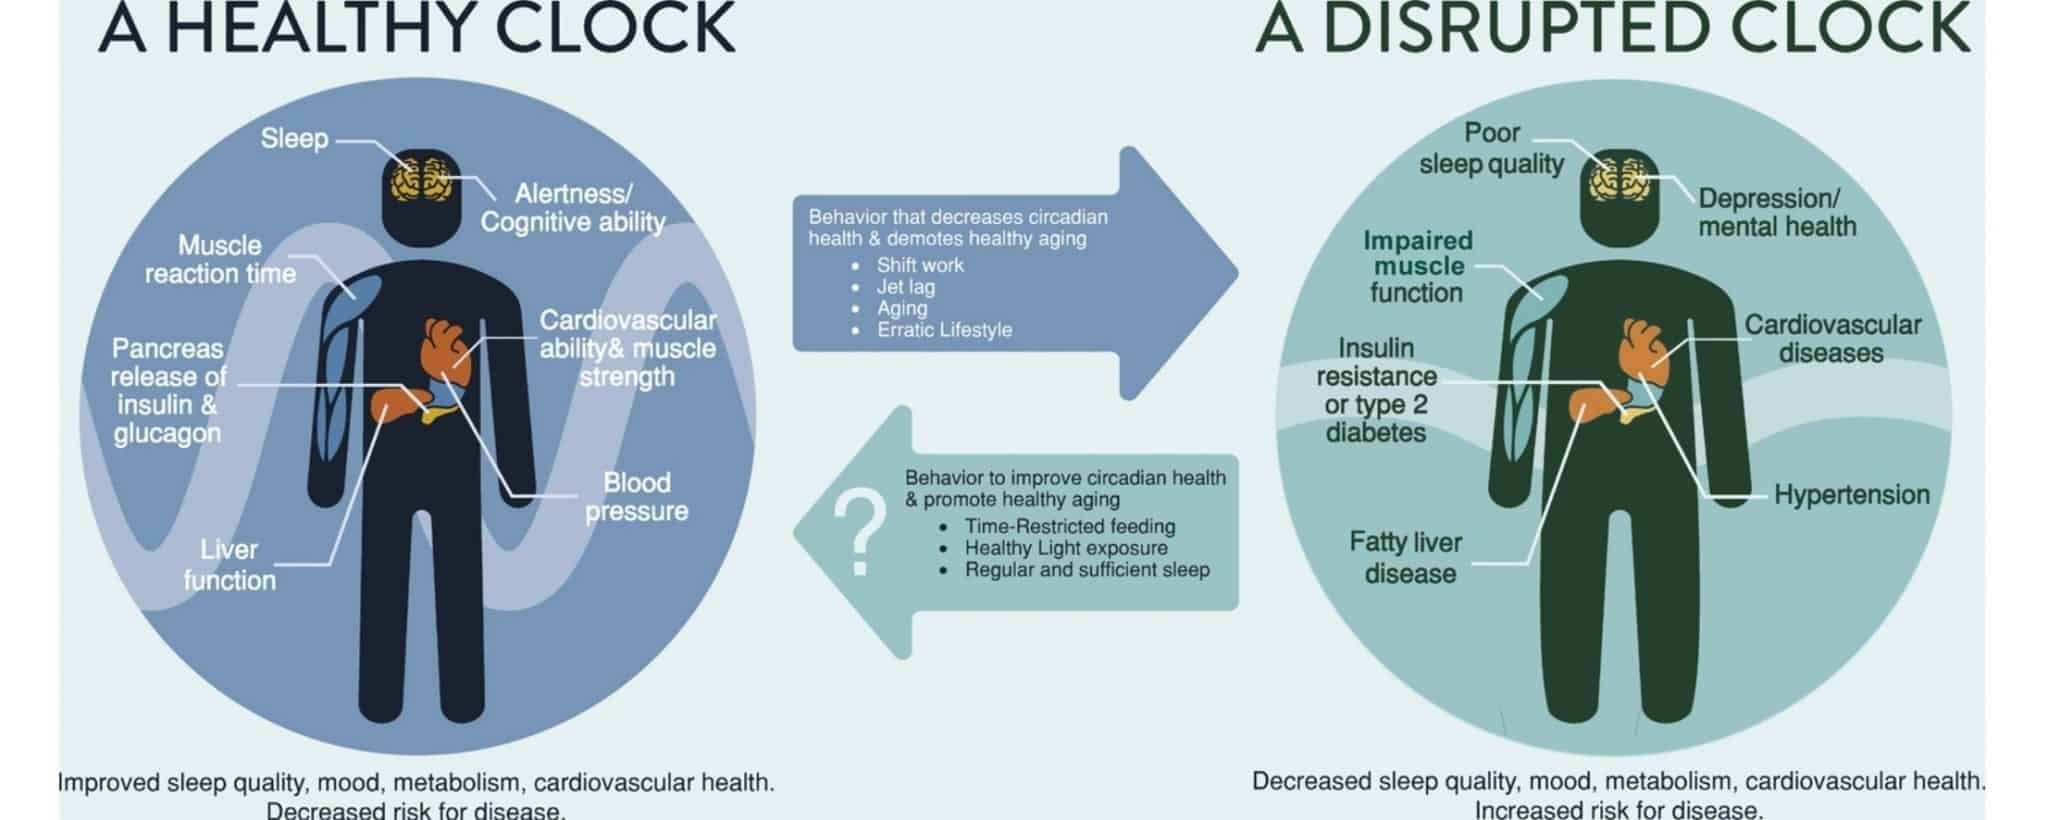 Healthy and unhealthy circadian clock